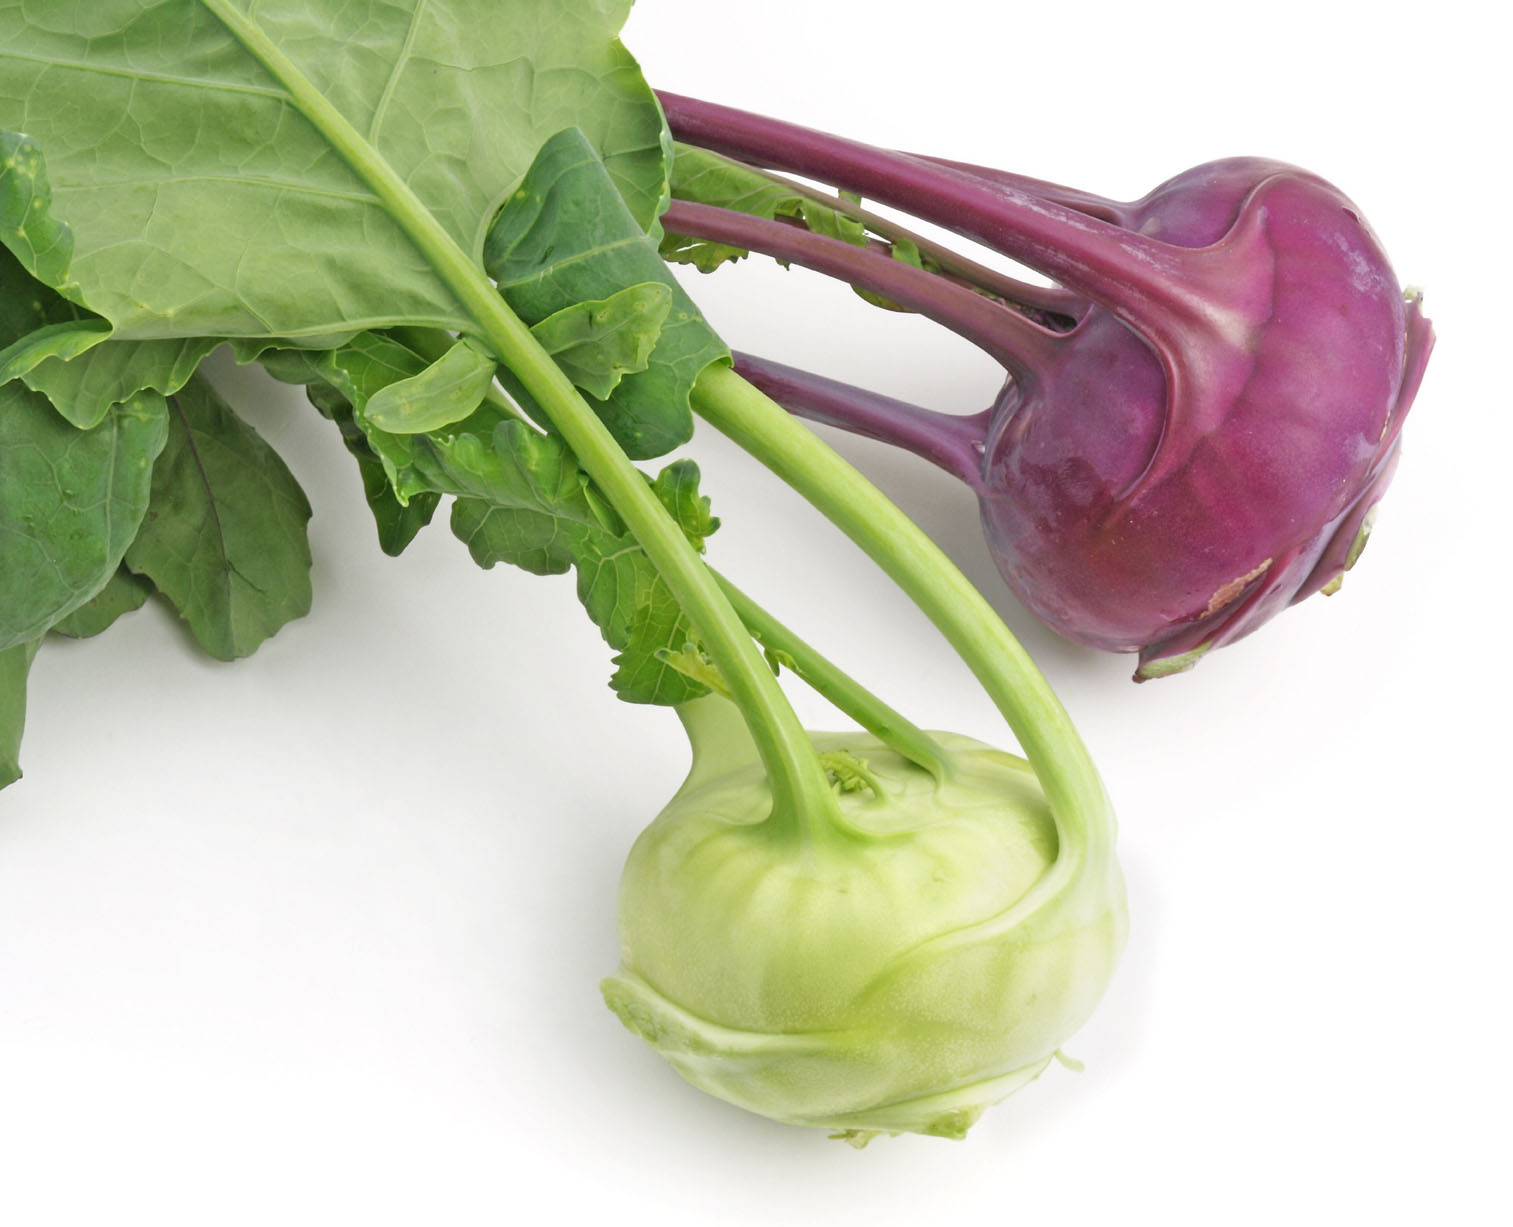 It S Called Kohlrabi And It Is Delicious Recipes Health Journal